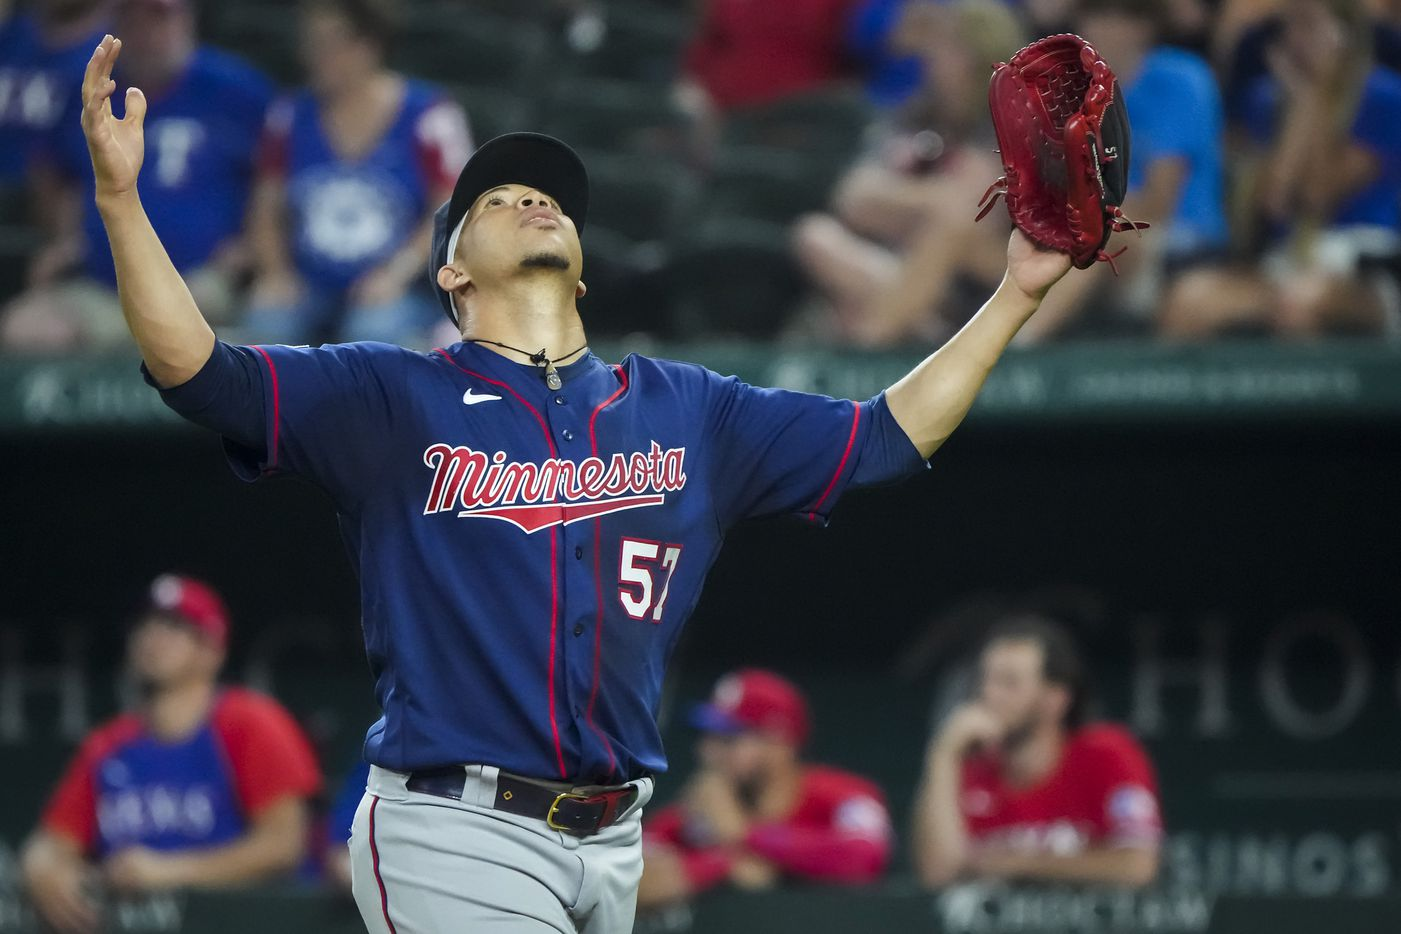 Minnesota Twins relief pitcher Hansel Robles reacts after recording the final out of the ninth inning against the Texas Rangers at Globe Life Field on Friday, June 18, 2021.